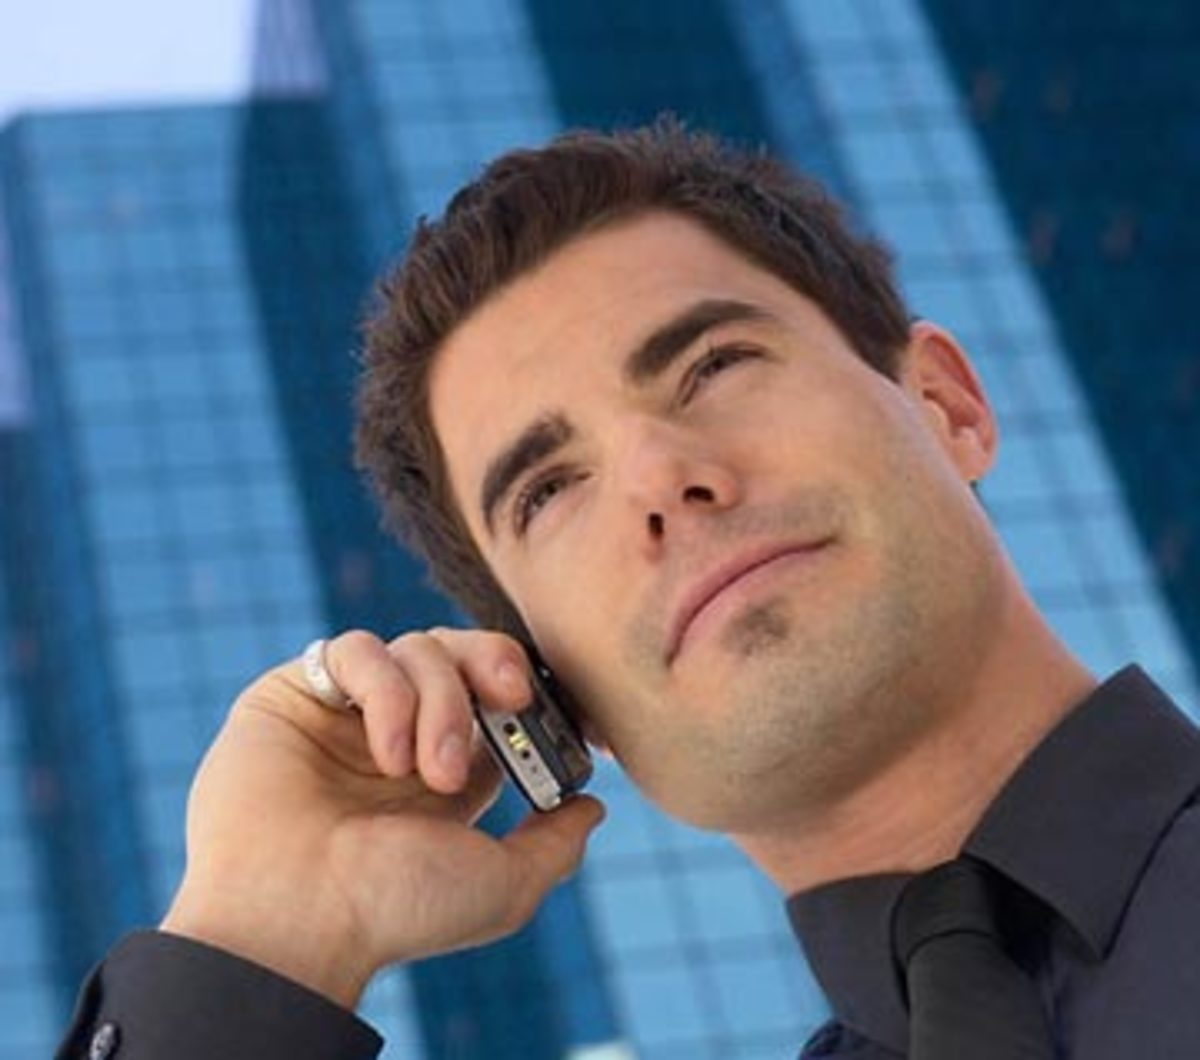 secrets-to-haggling-with-cell-phone-salesmen